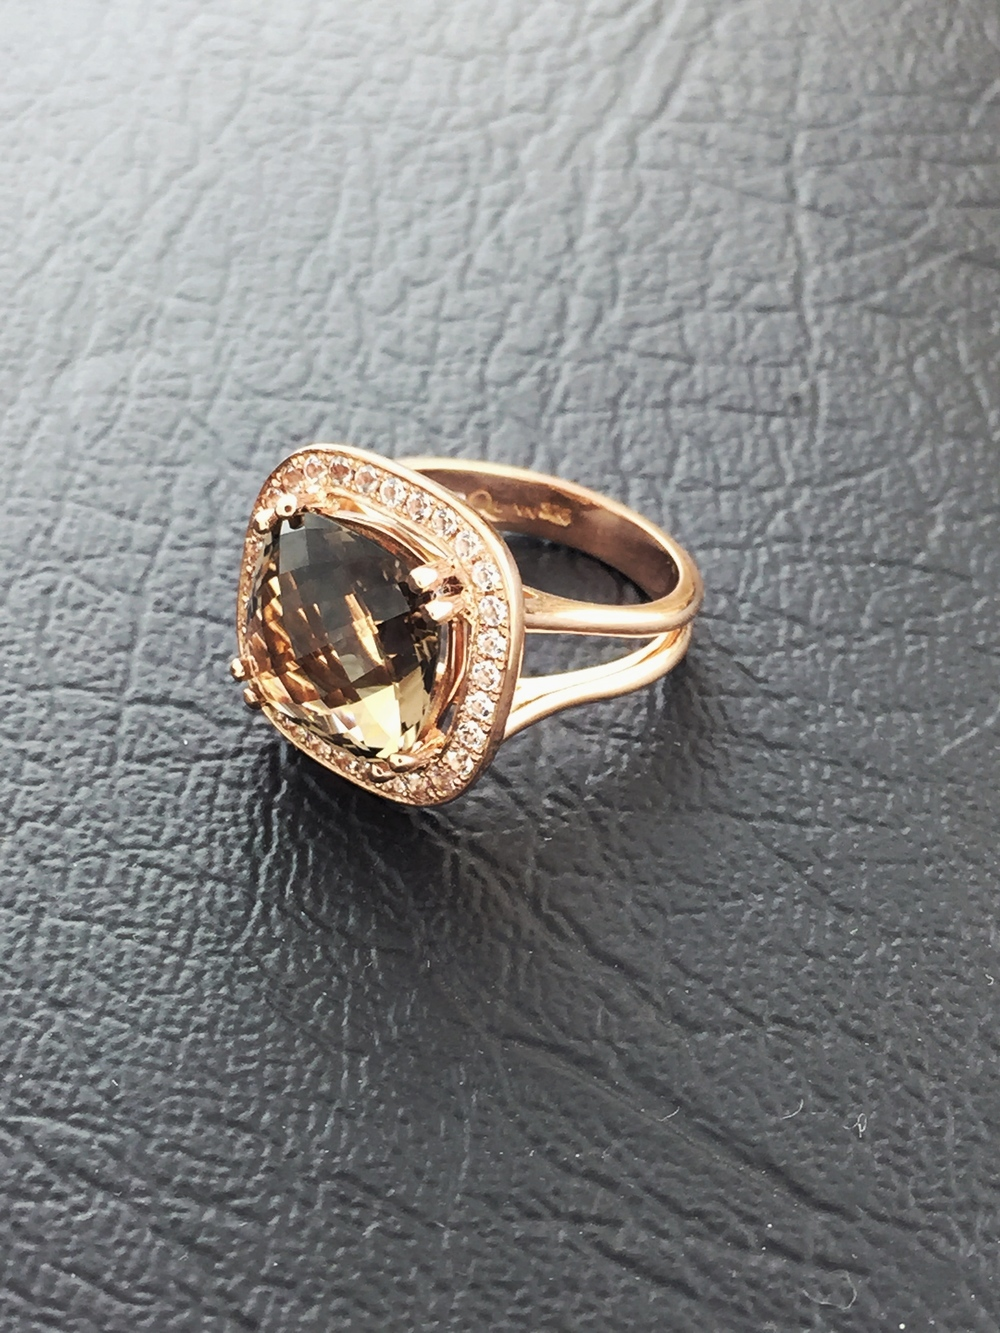 Rose gold and smokey Quartz ring $1,450